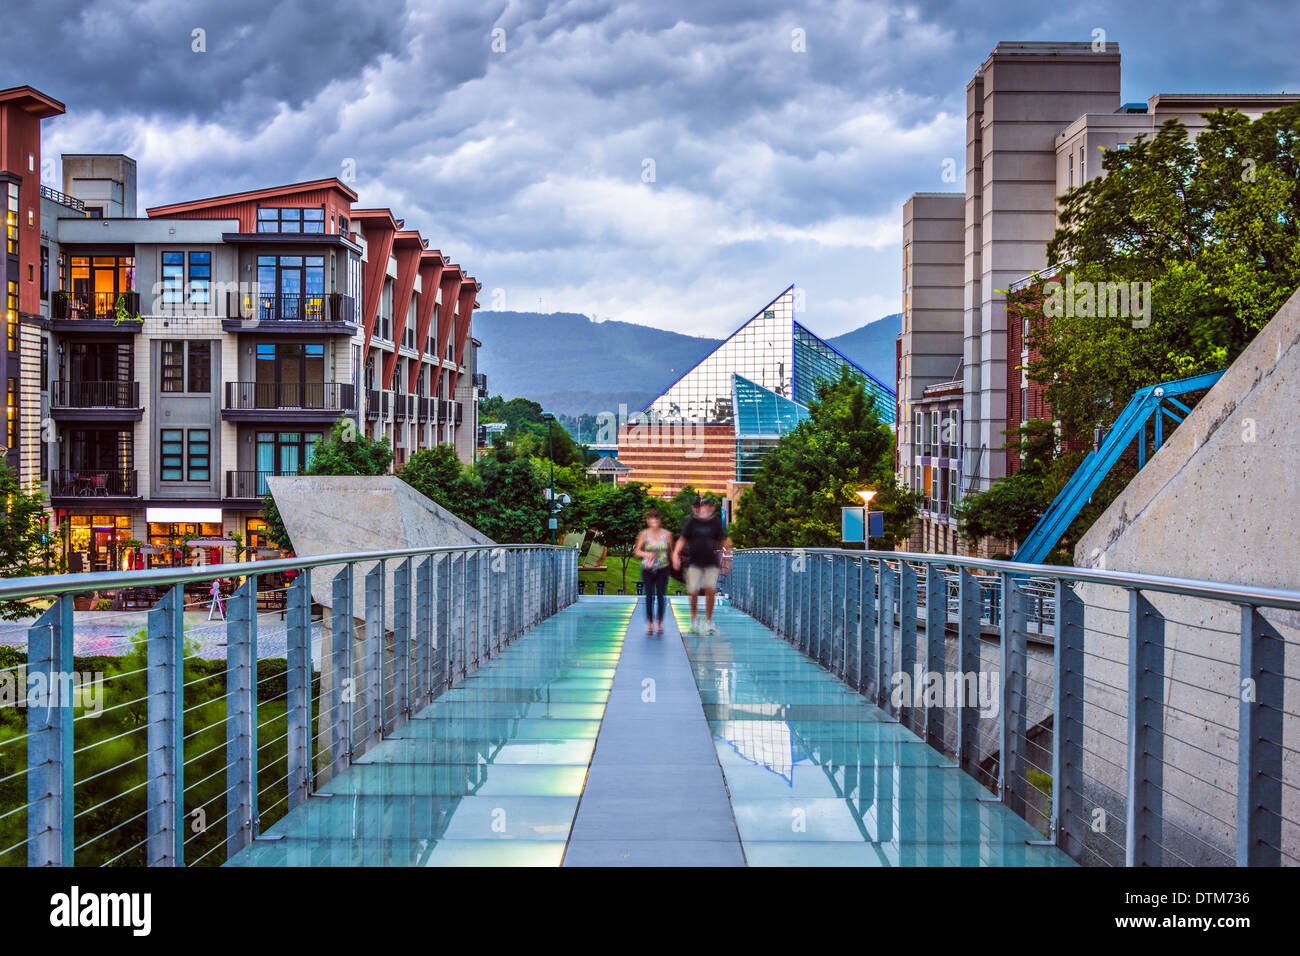 Chattanooga, Tennessee, USA downtown at twilight. - Stock Image